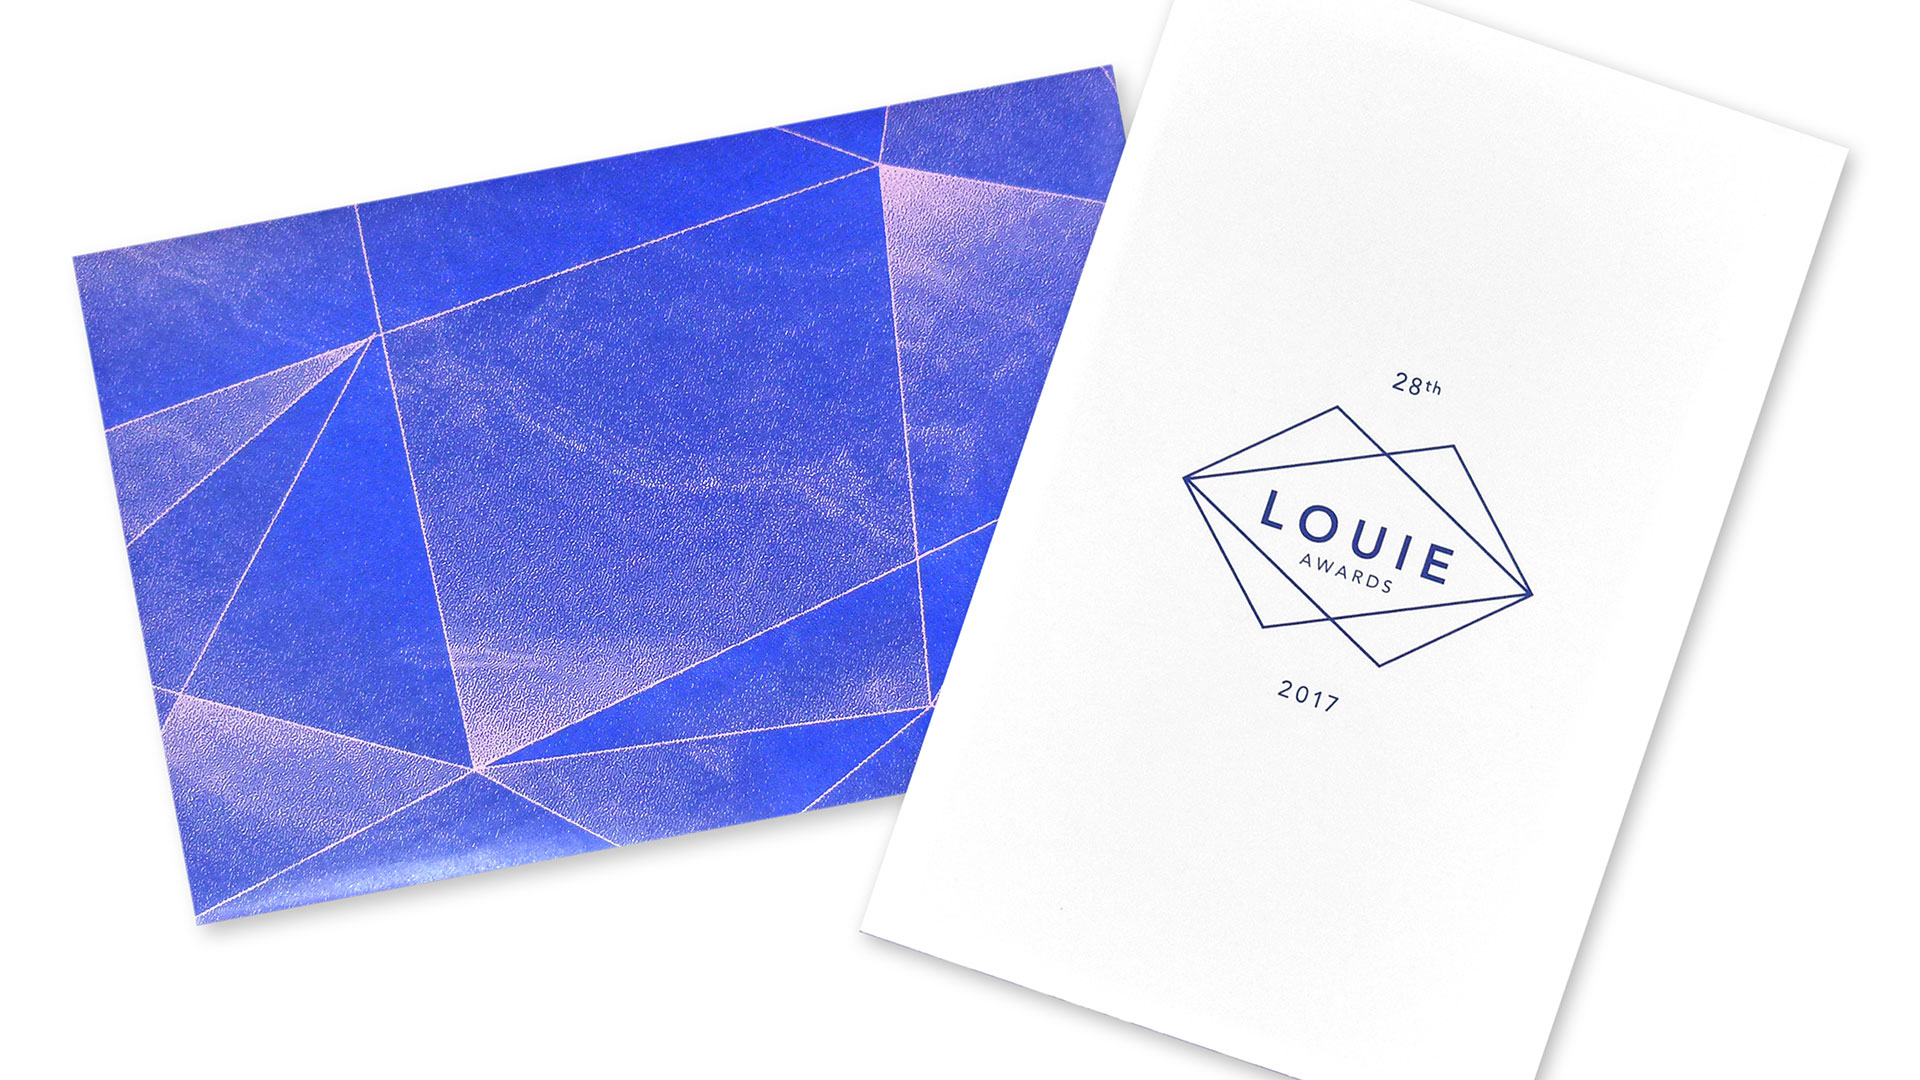 1000-louie-awards-1